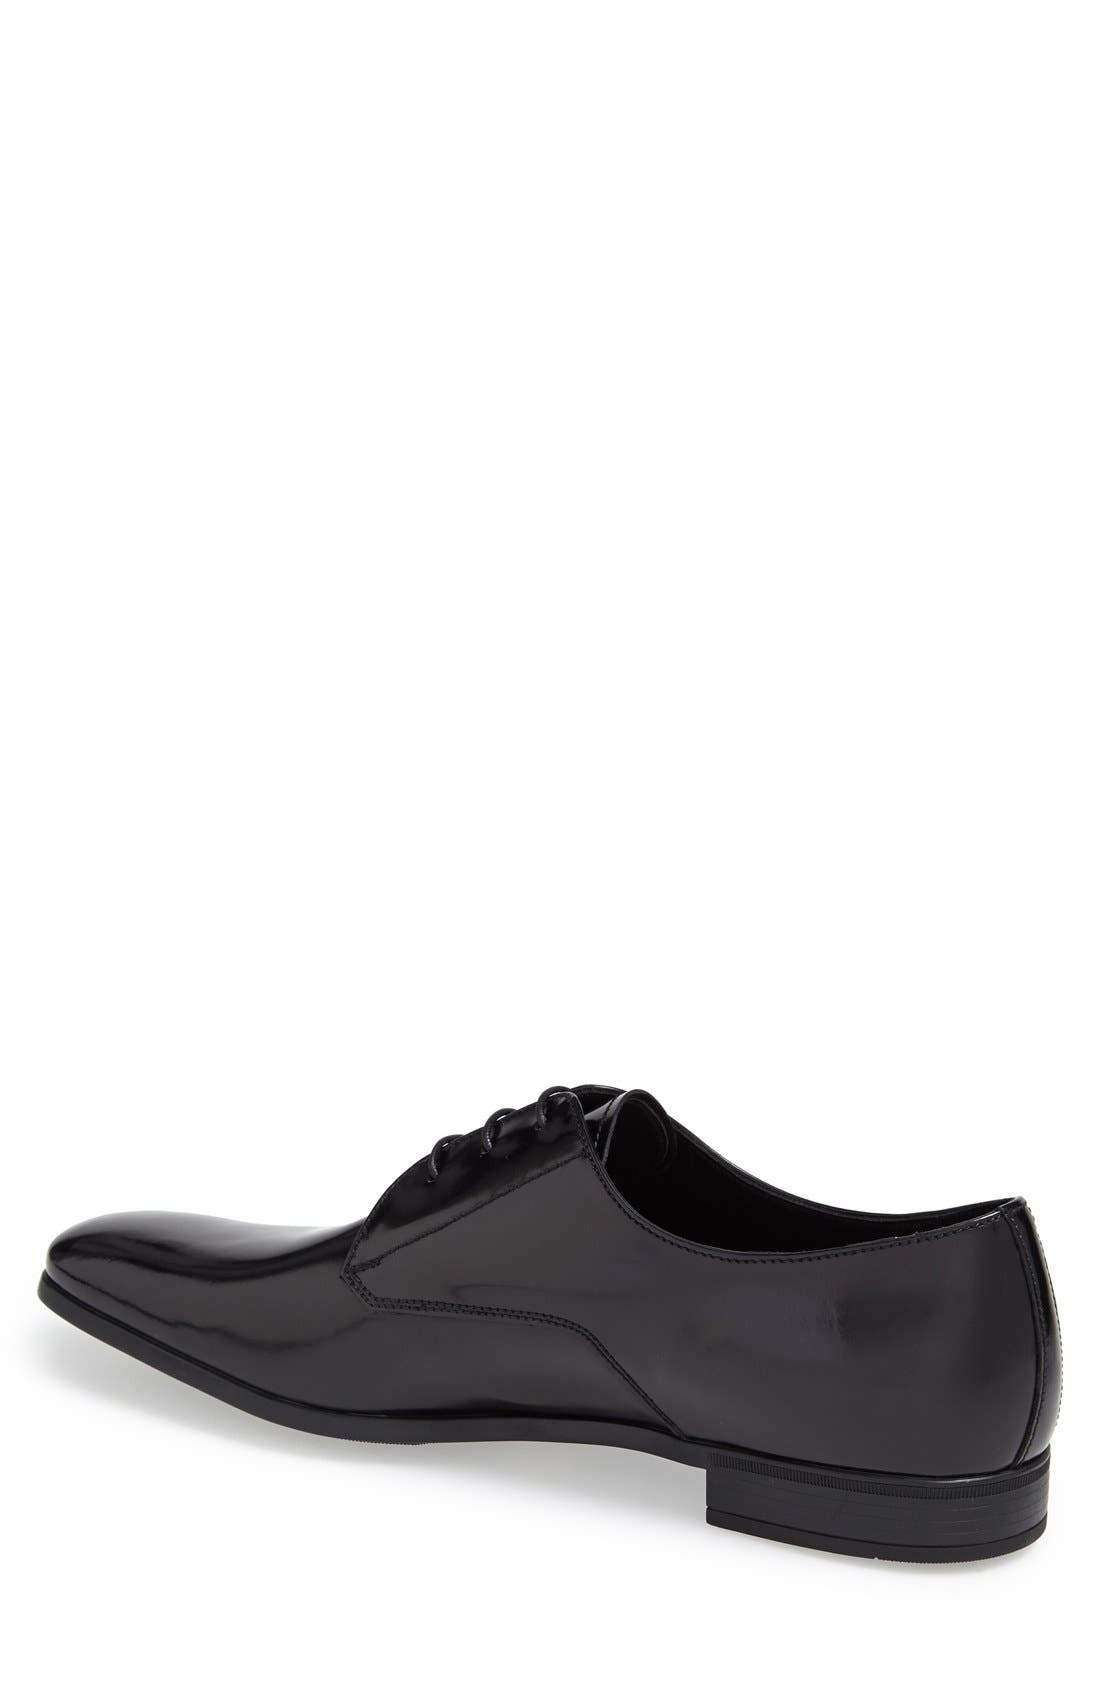 Alternate Image 2  - Prada Spazzalato Plain Toe Derby (Men)